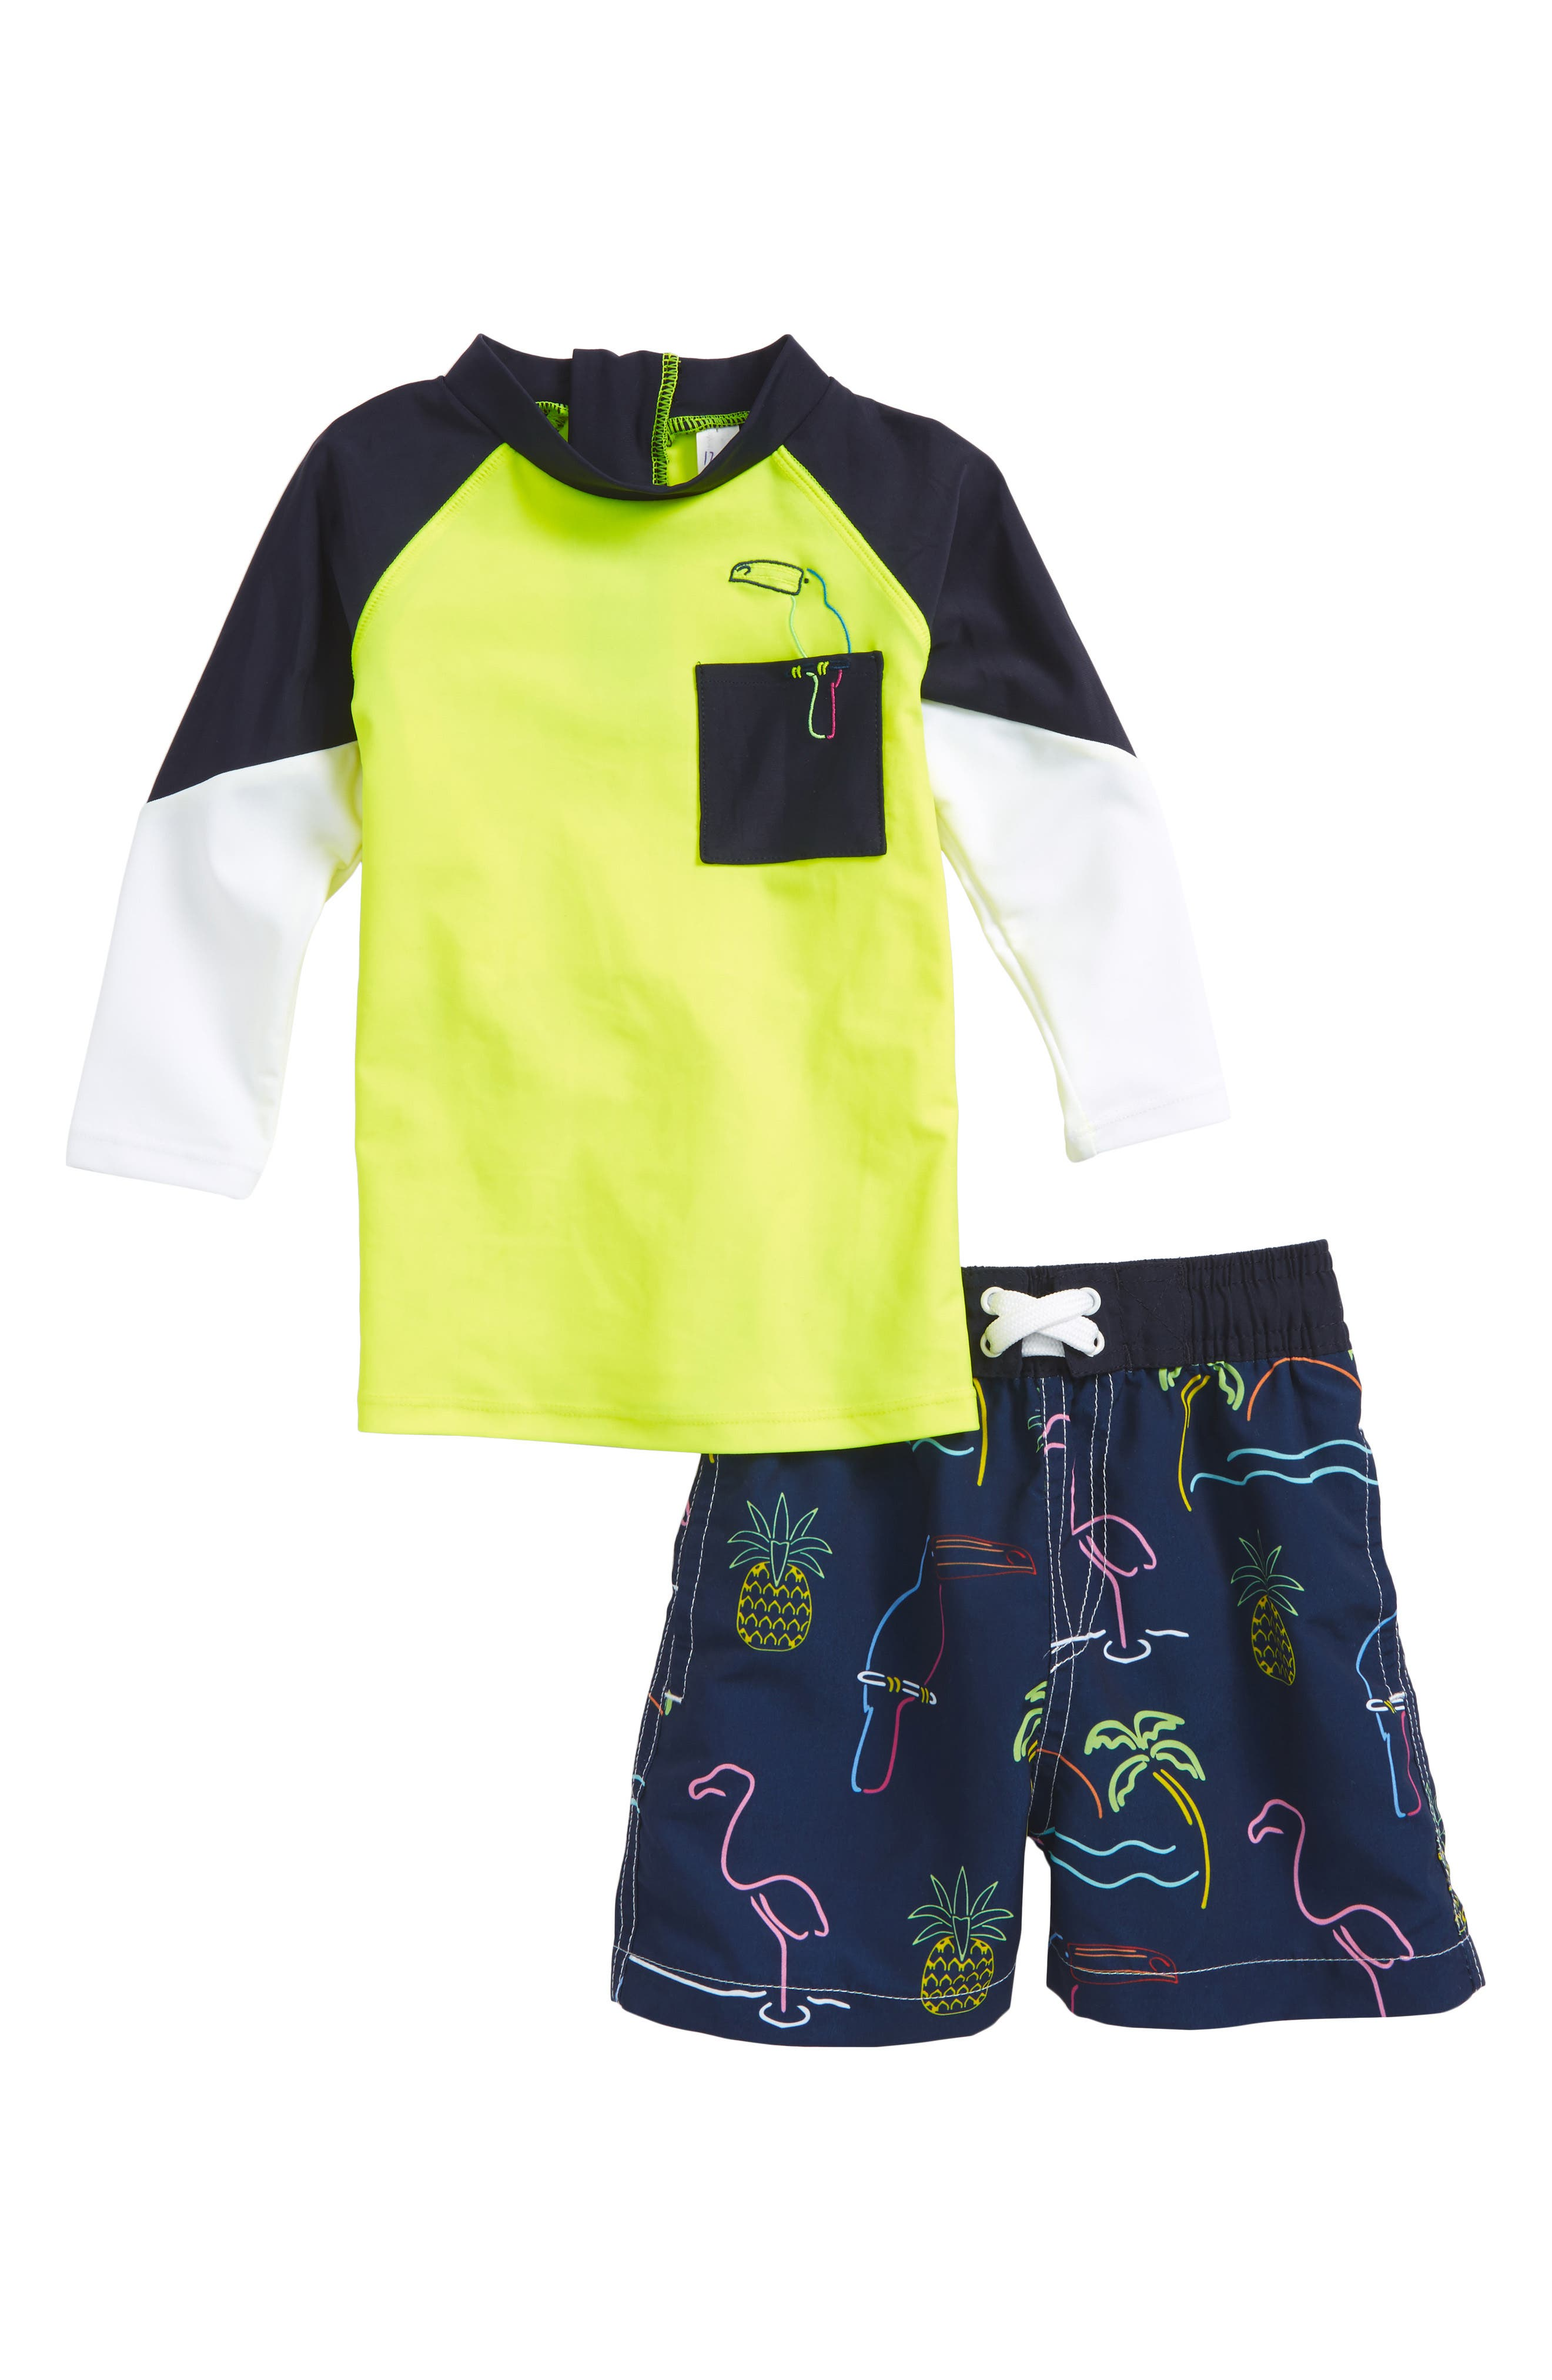 Alternate Image 1 Selected - Shade Critters Neon Sign Two-Piece Rashguard Swimsuit (Baby Boys)